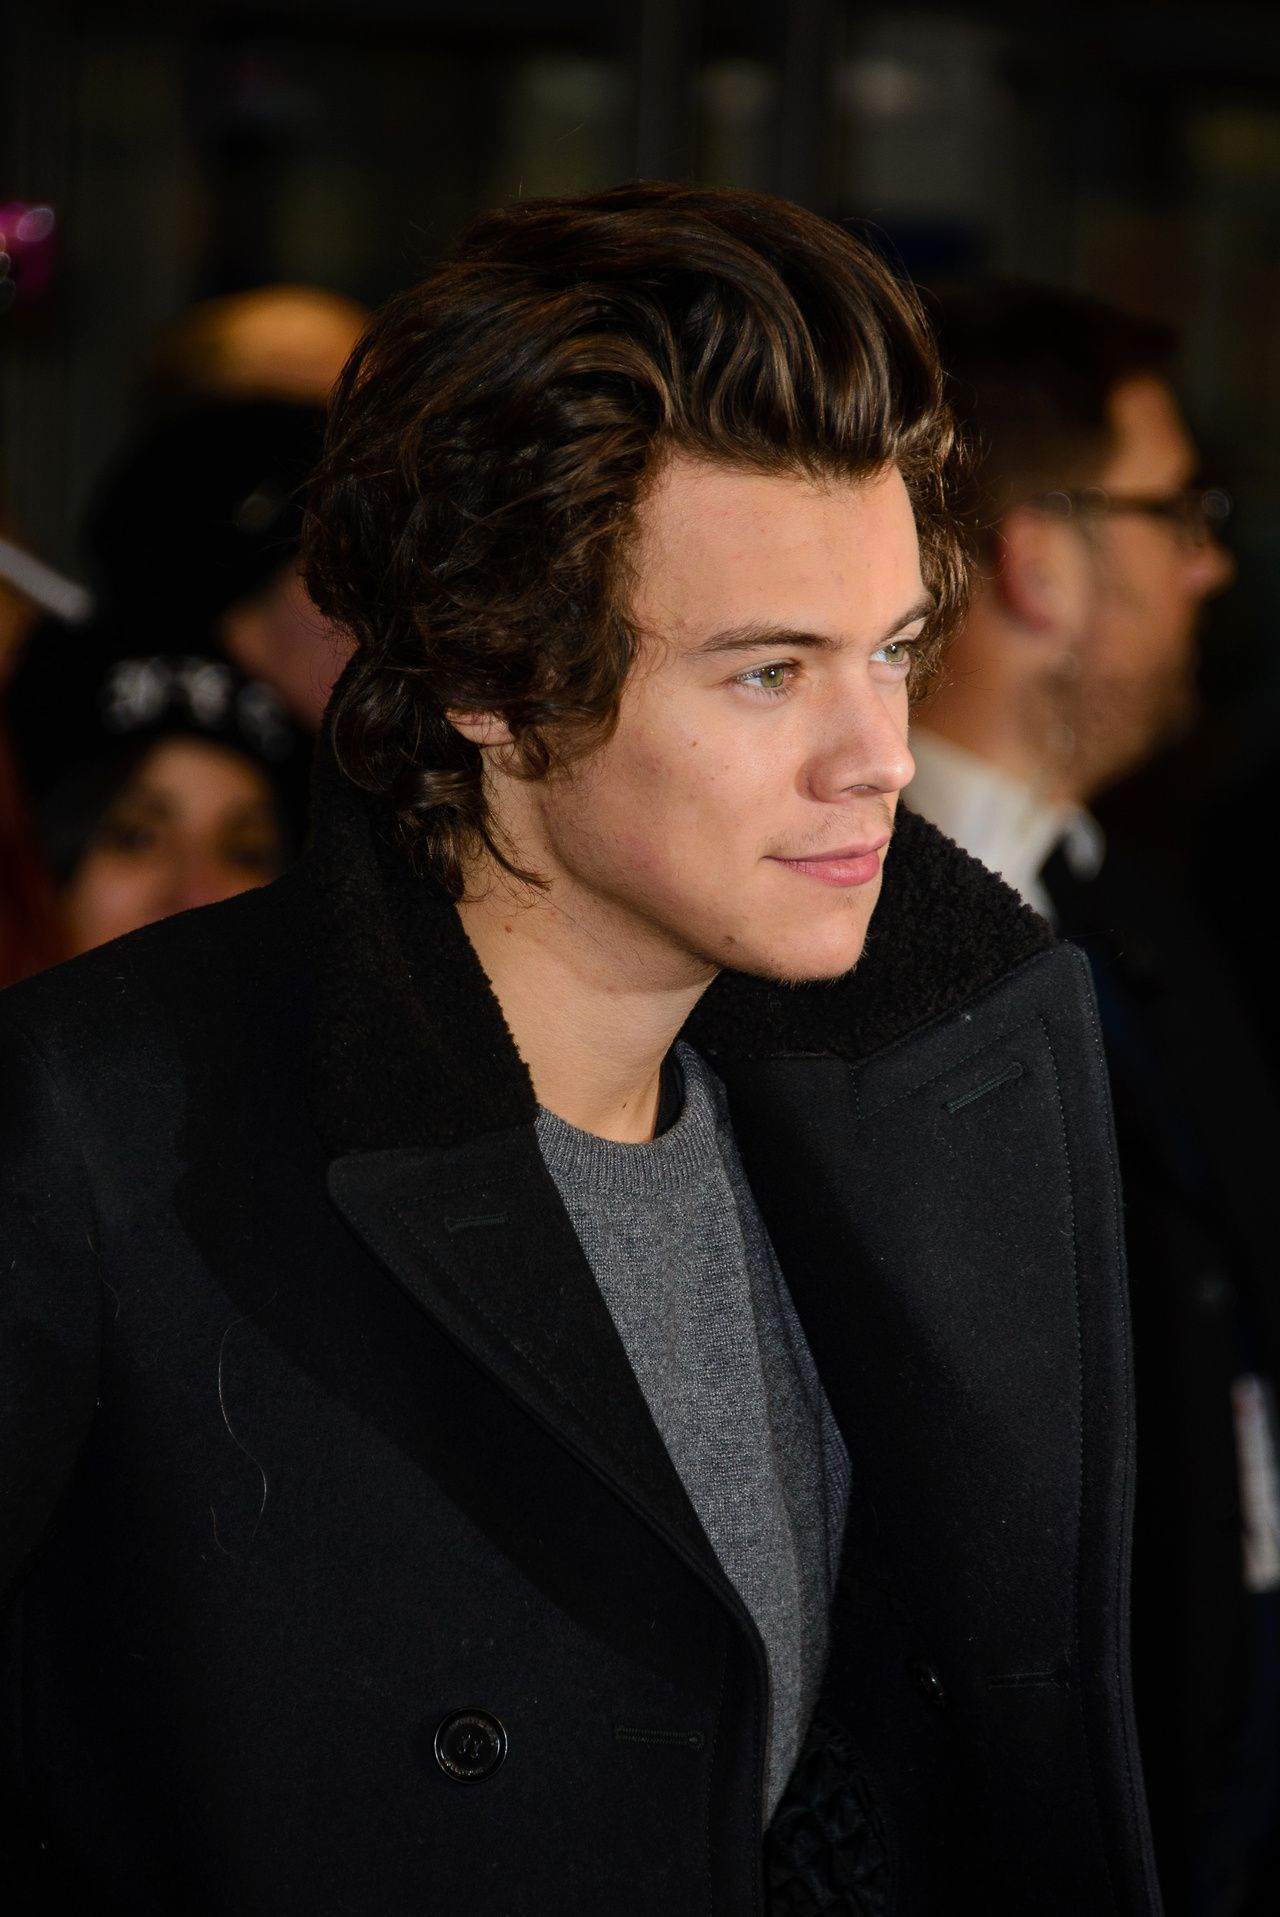 Harry Styles New Haircut December 2013 16076 Movieweb